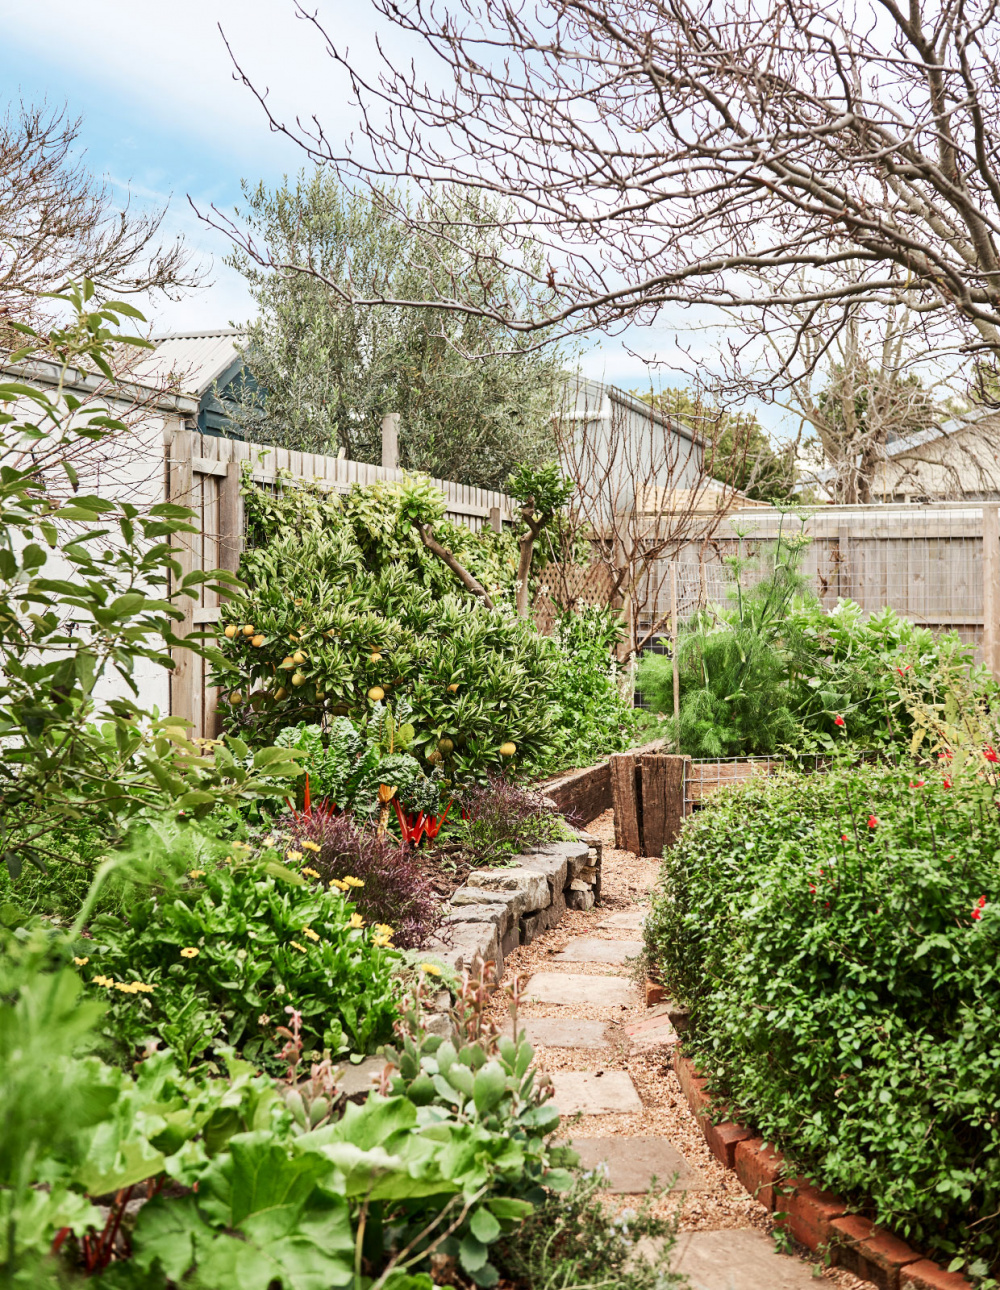 A Gorgeous Geelong Home With A Seriously Thriving Garden Is For Sale In 2020 Thriving Garden Landscaping Inspiration Hardscape Design